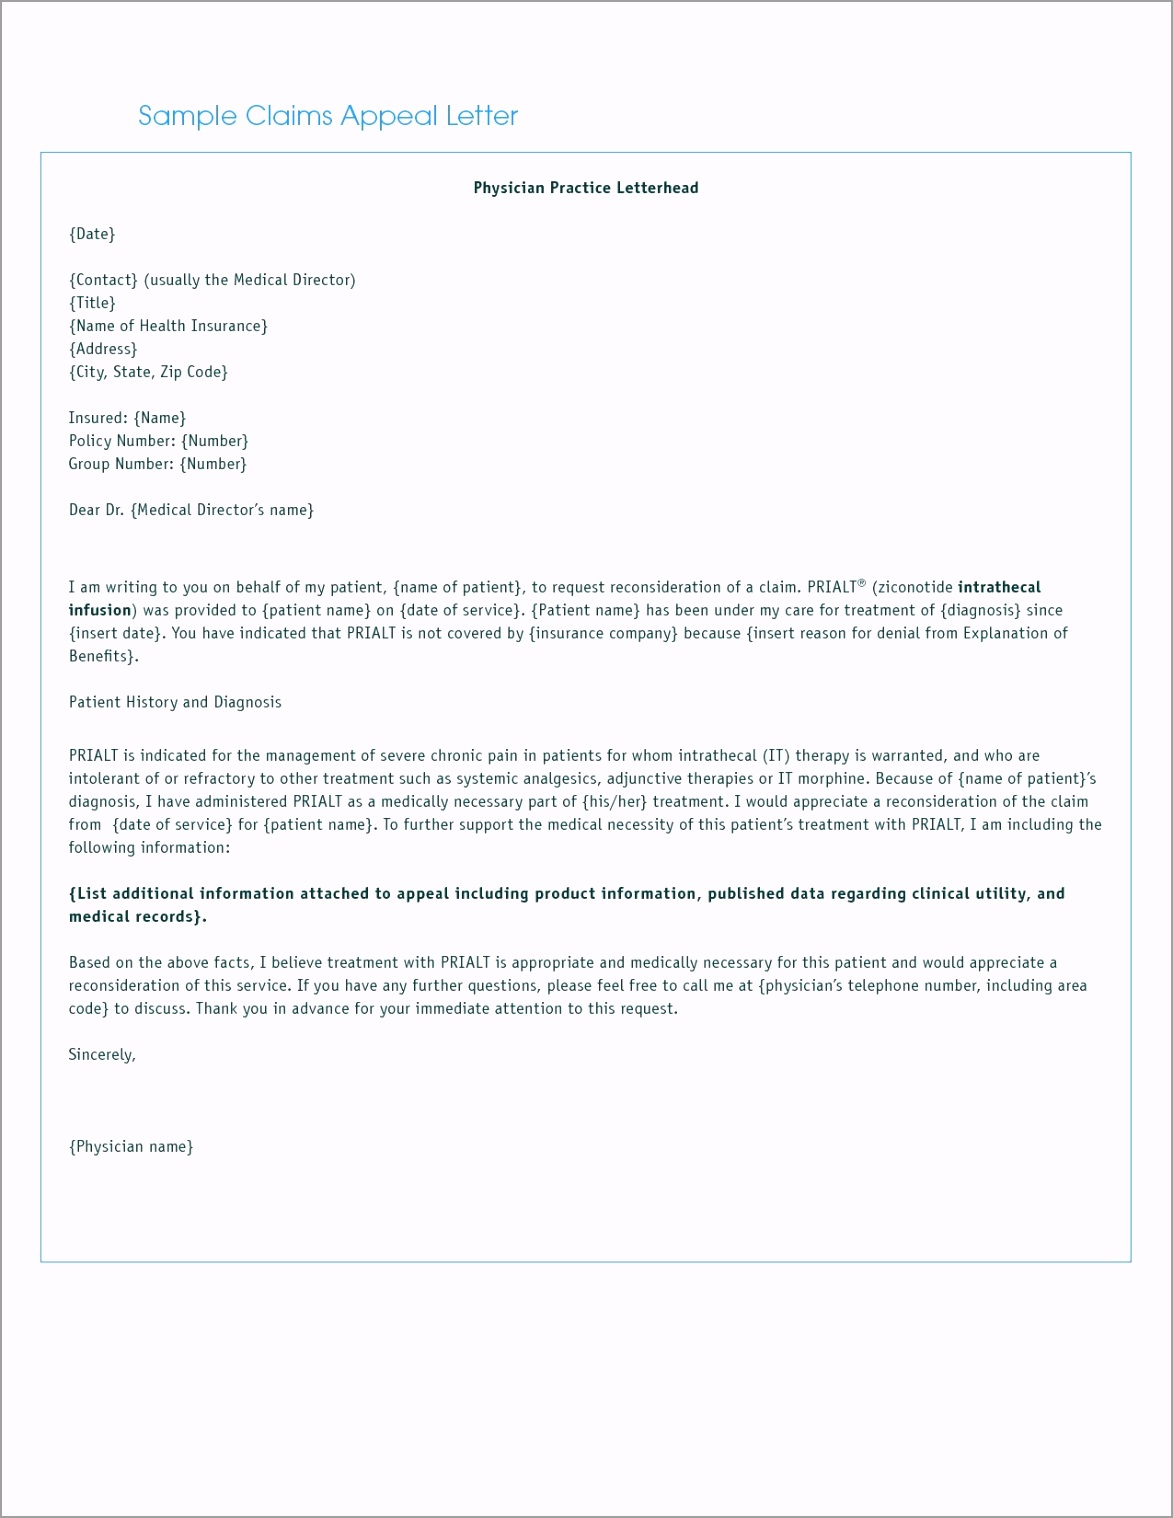 letter format for medical insurance claim refrence letter insurance of medical claim appeal letter template yitto